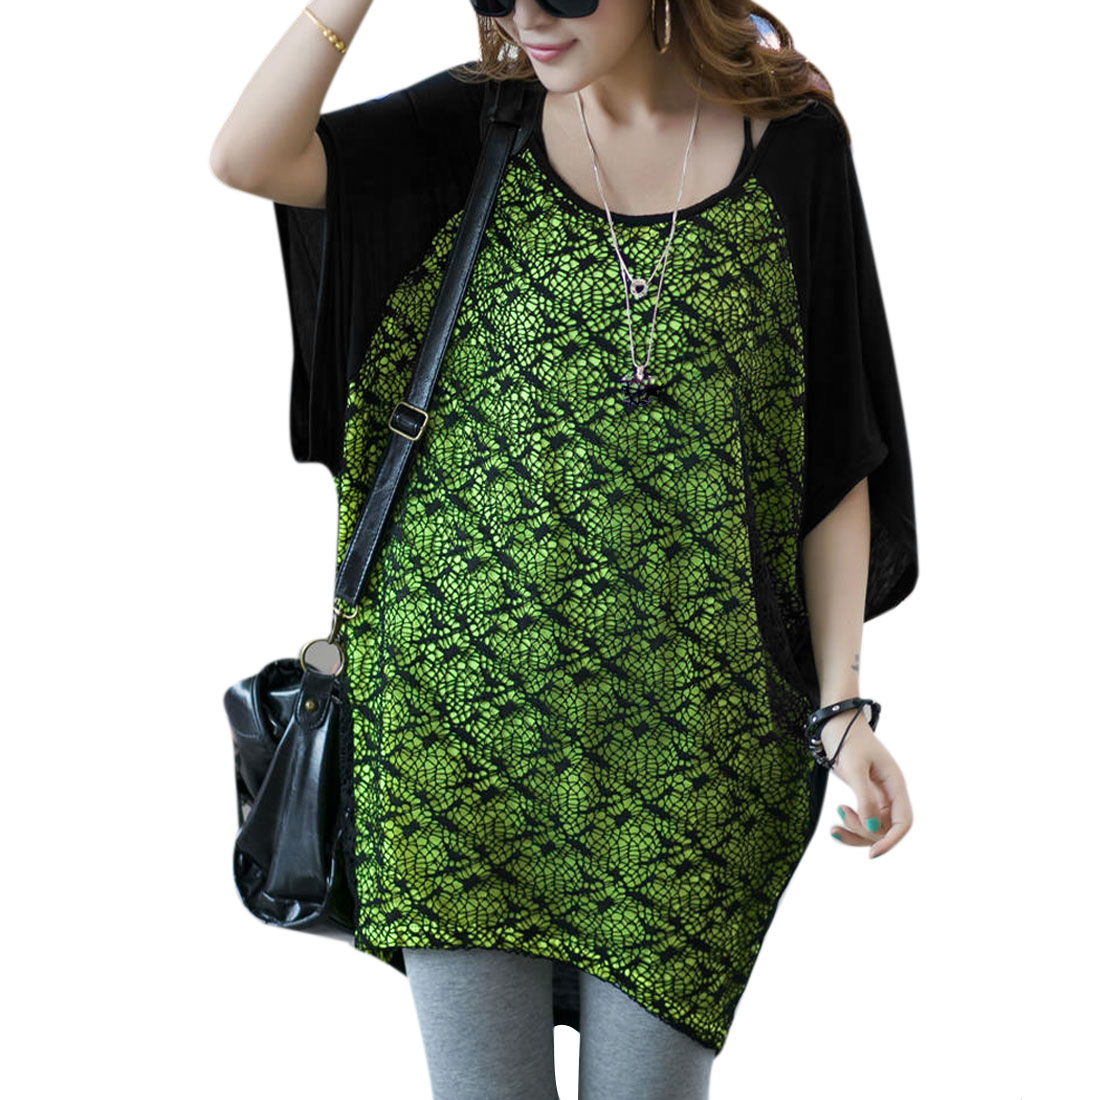 Stylish Bright Green Black Hollow Crochet Splice Front Loose Top for Lady M